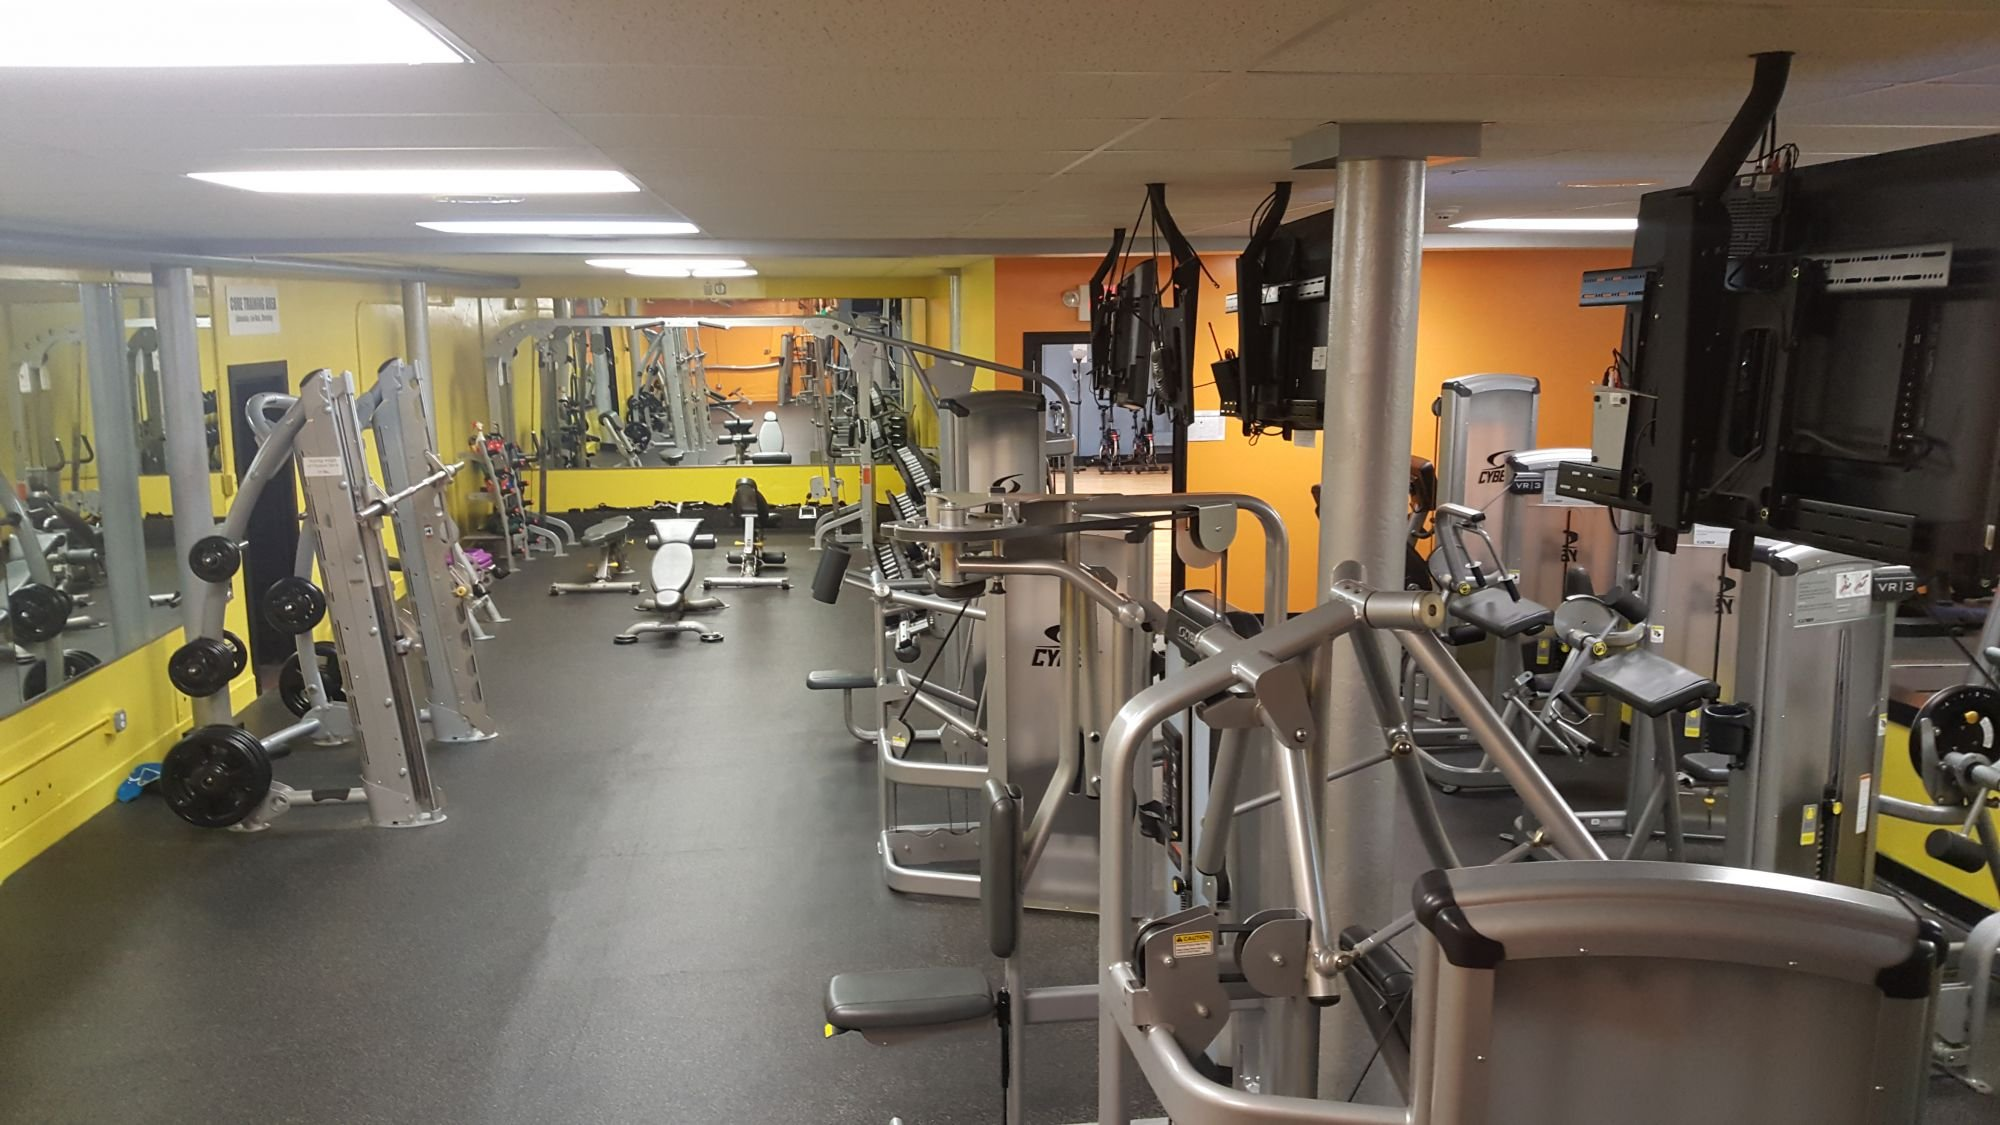 The interior of the old armory has been totally renovated as evidenced by this modern exercise room.